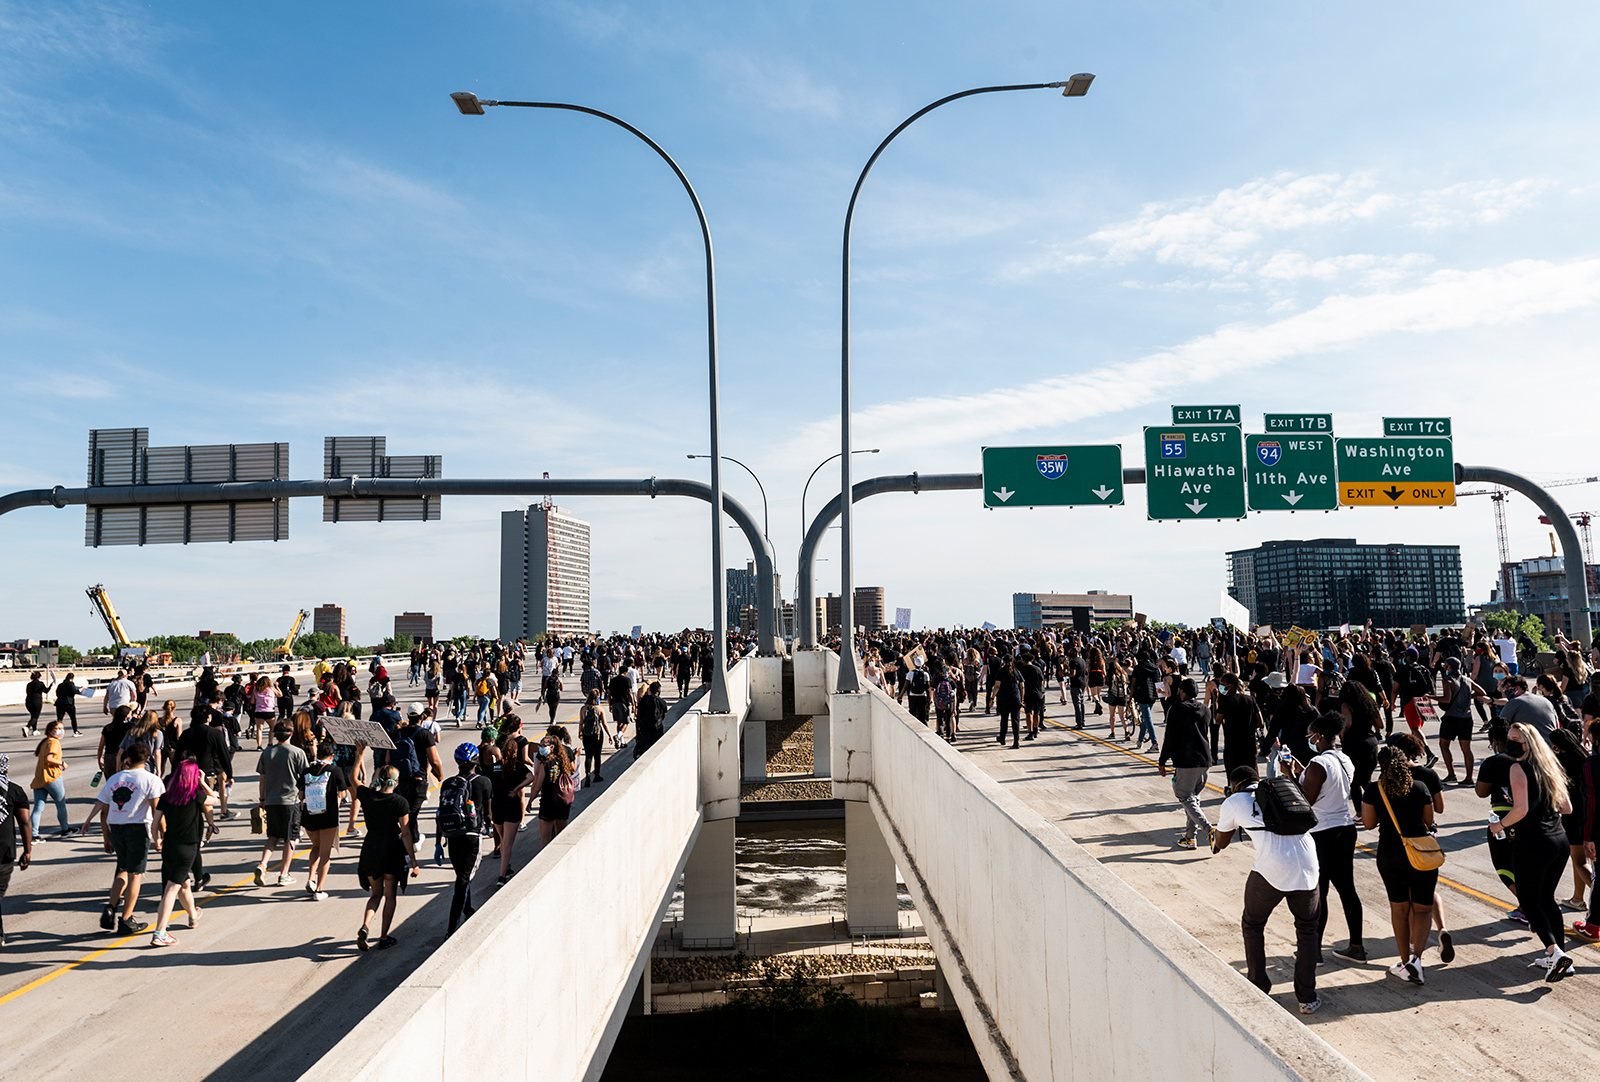 A crowd marches to protest the death of George Floyd on the I-35W bridge over the Mississippi River on May 31, in Minneapolis.